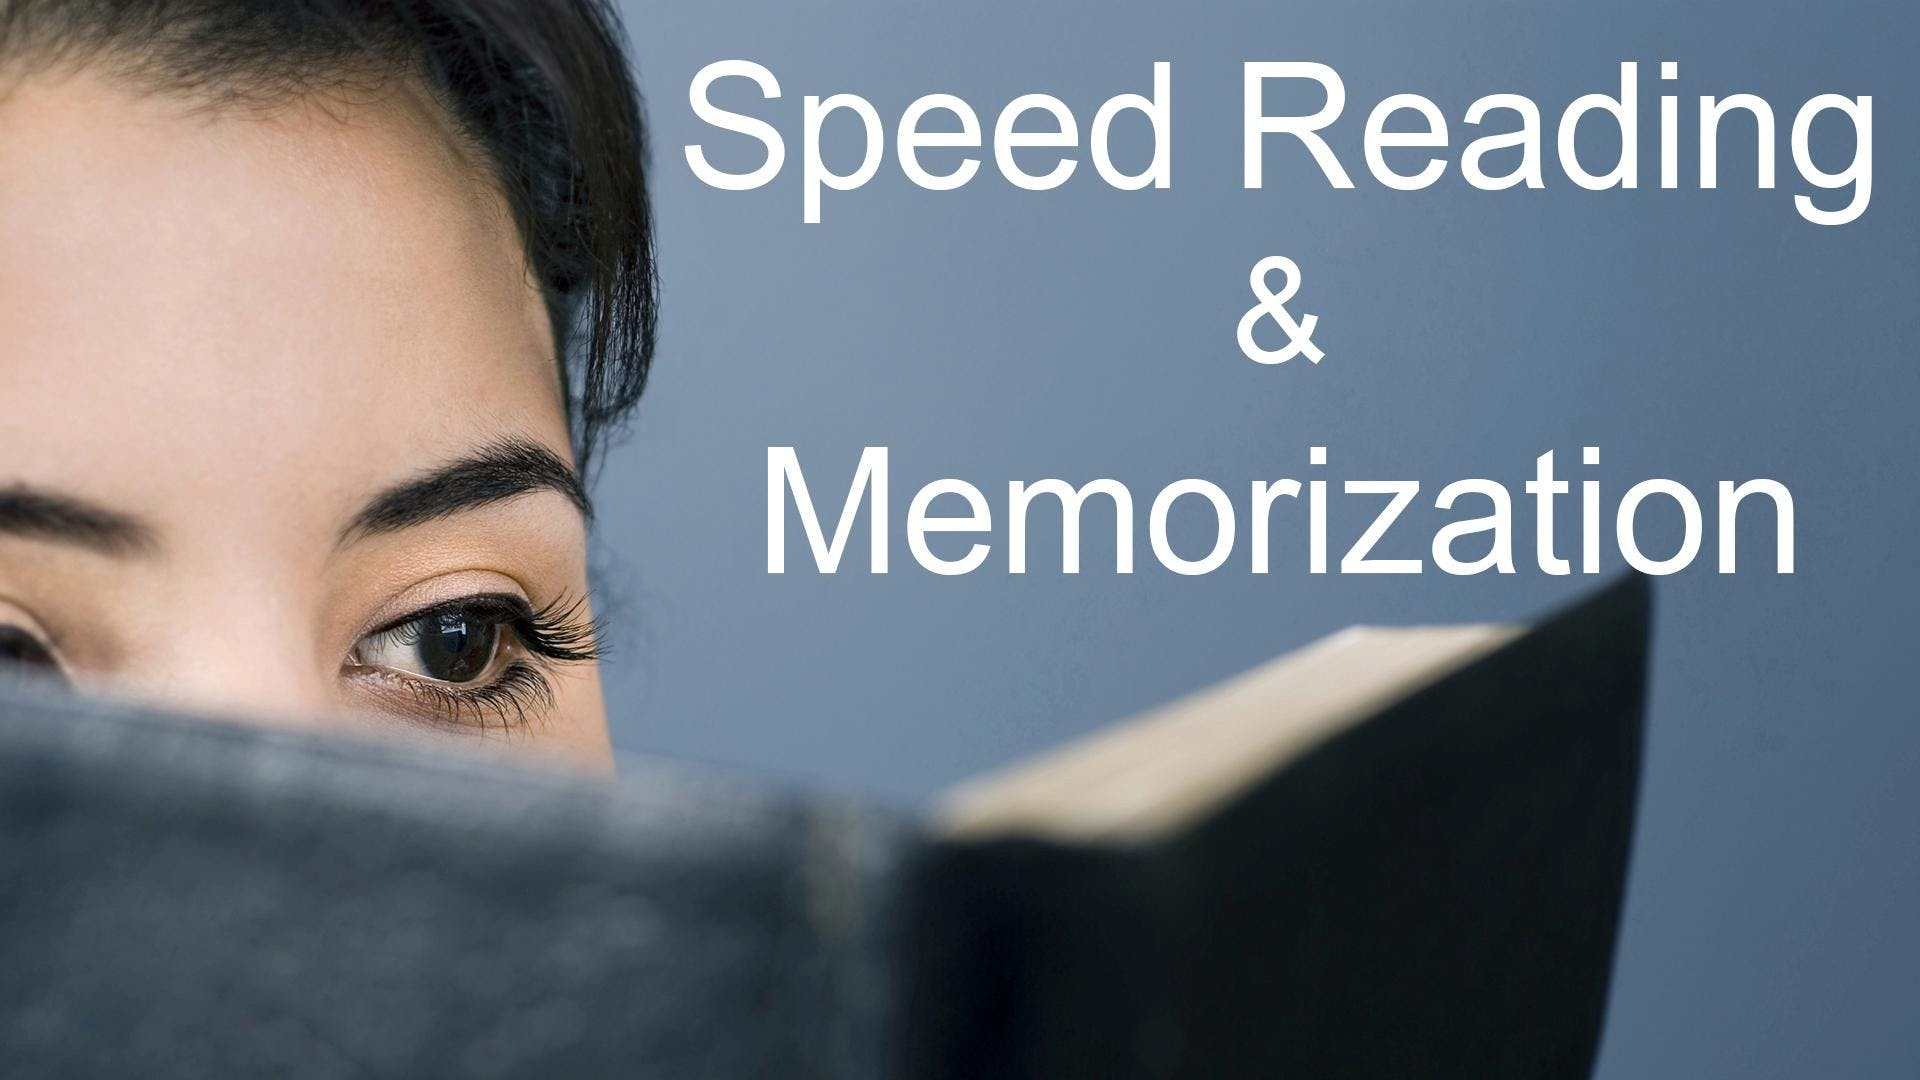 Speed Reading & Memorization Class in Boston